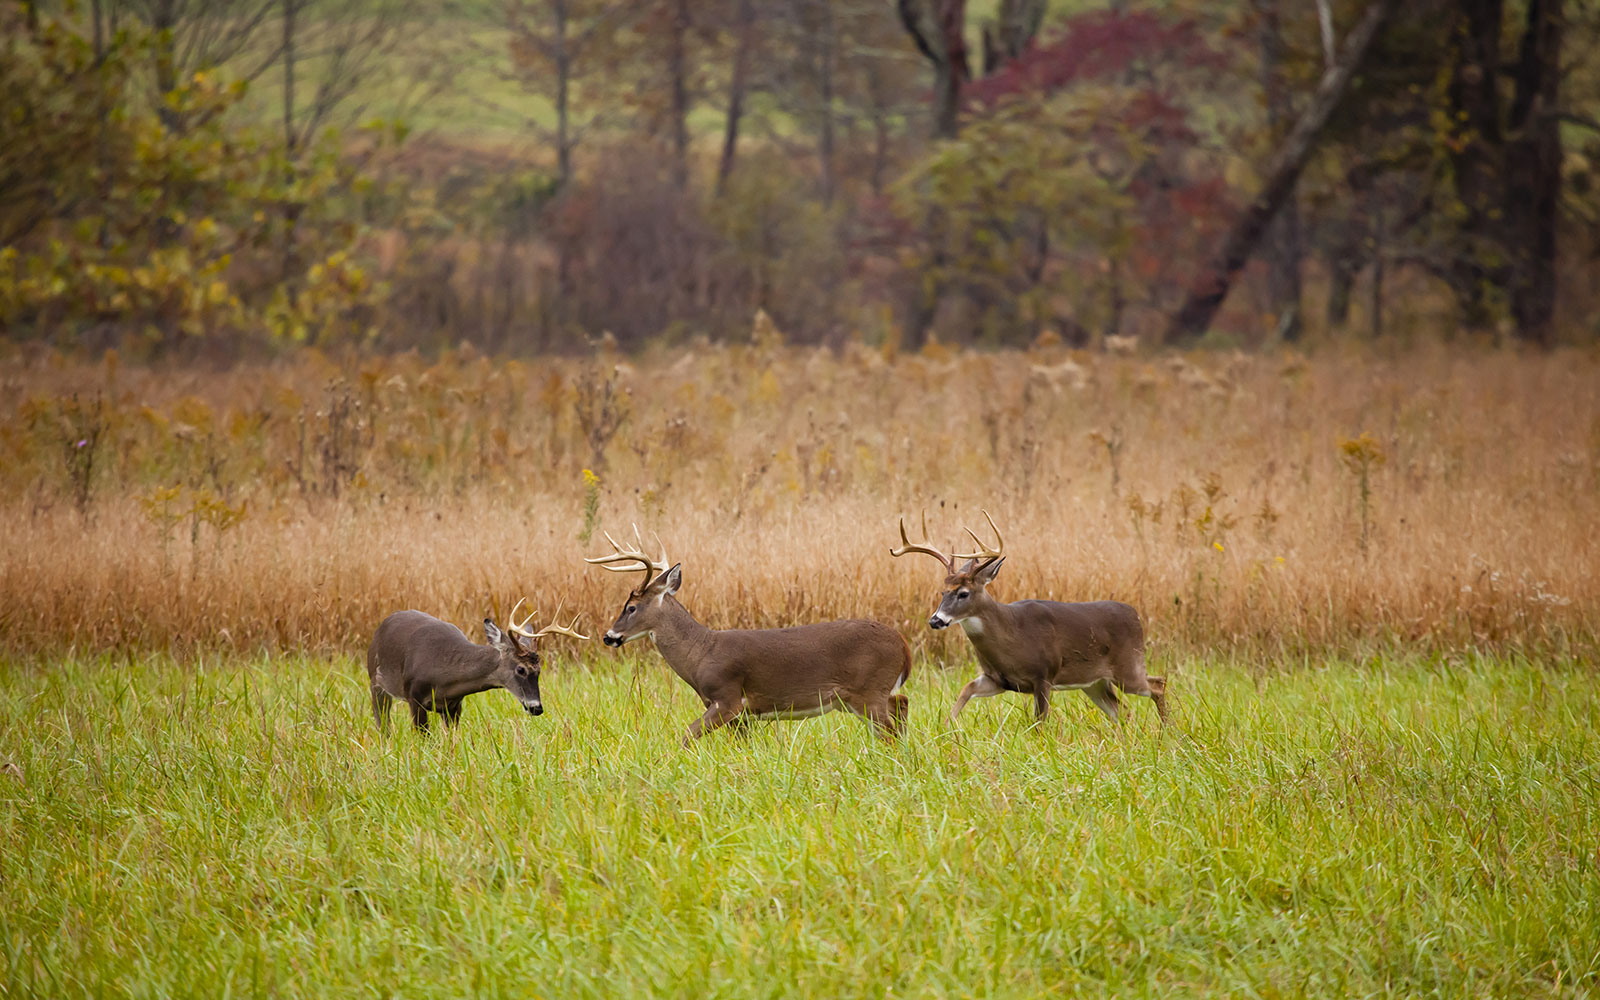 wild deer in a field at Cades Cove in The Smoky Mountains, Gatlinburg, TN